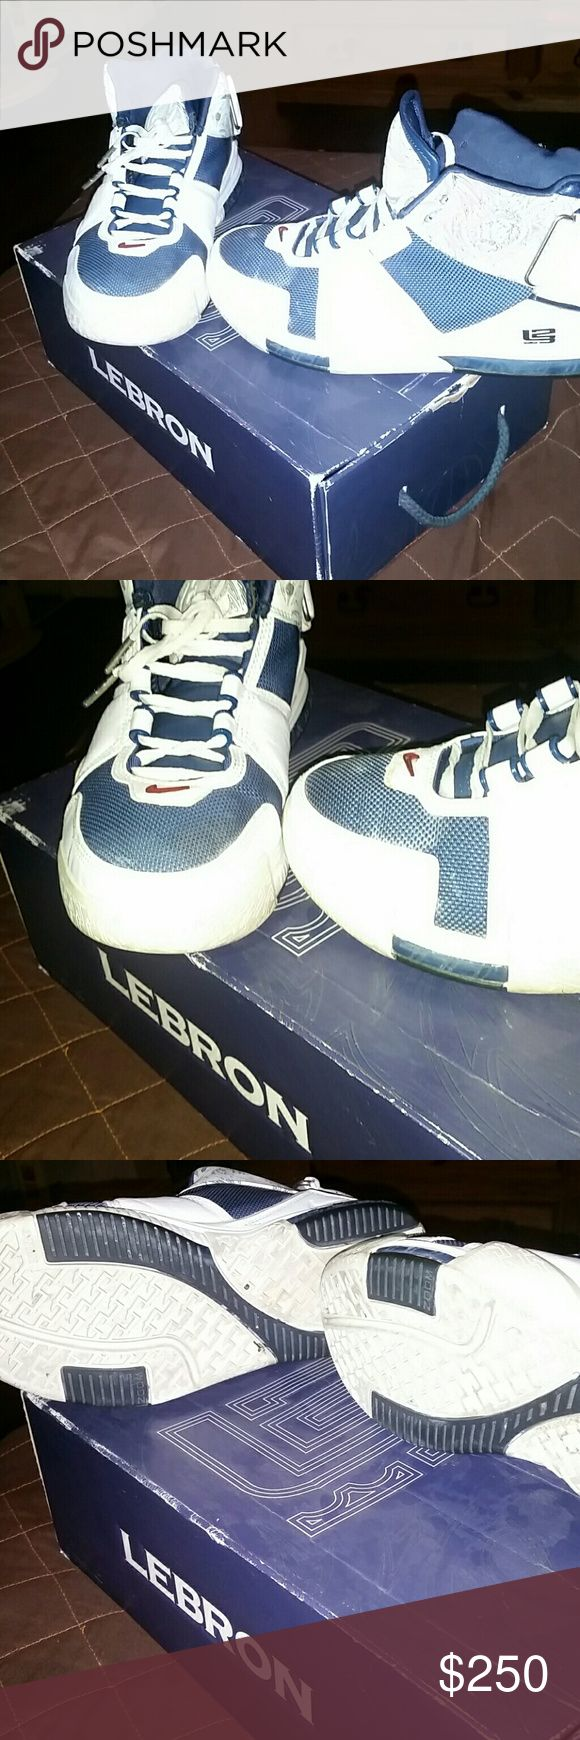 Lebron 2's Lebron 2's , yellowing but still a great shoe Nike Shoes Sneakers